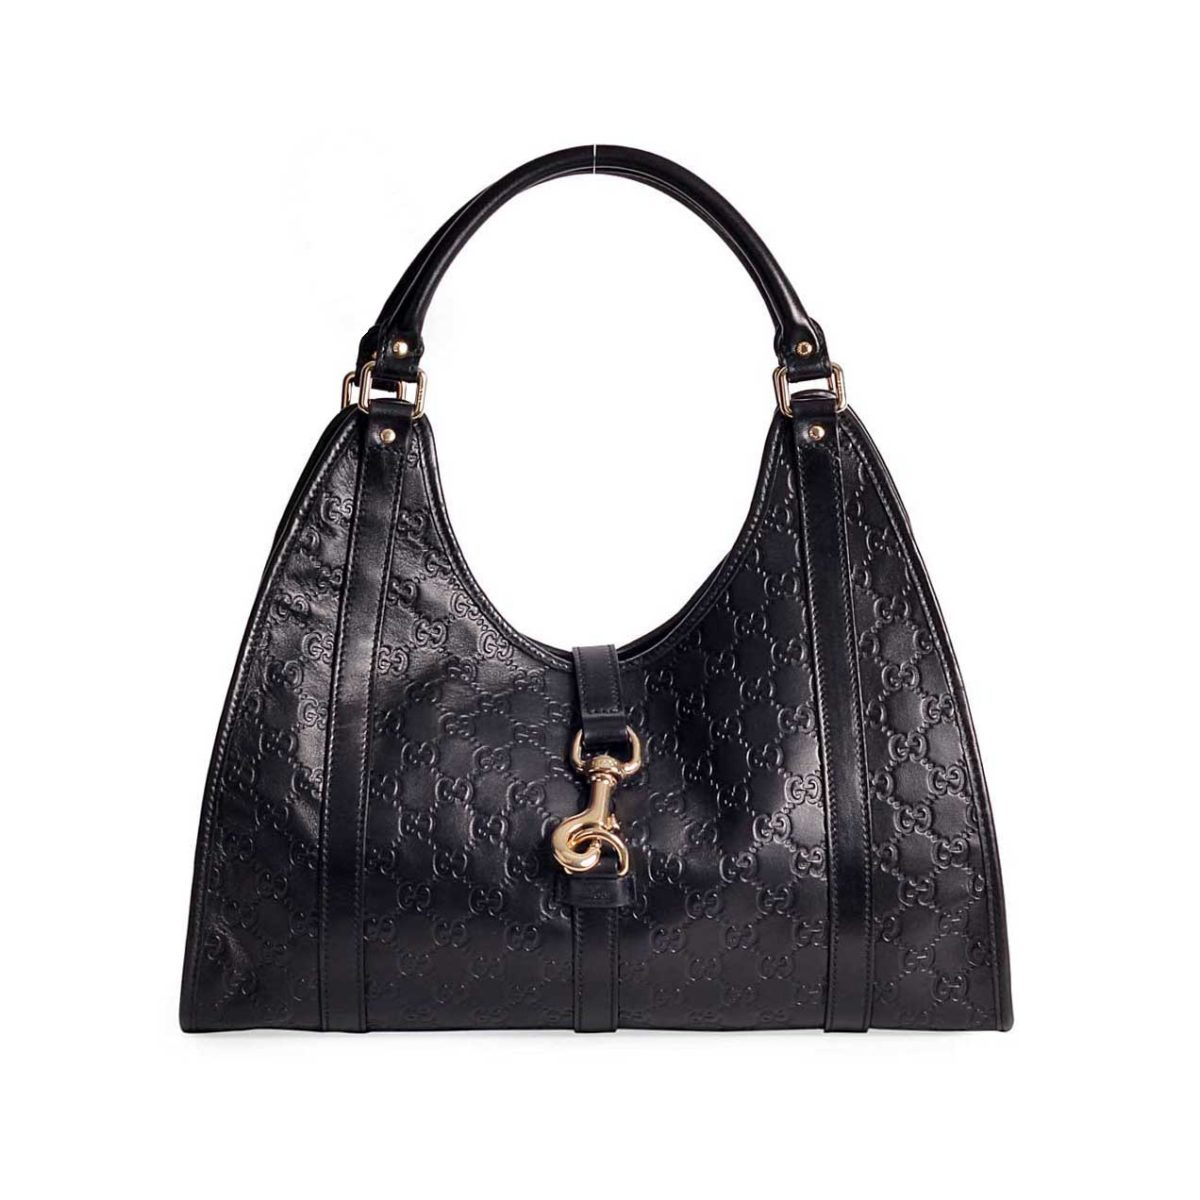 b856d3e52cee GUCCI Guccissima Black Leather Medium Joy Shoulder Bag - NEW | Luxity